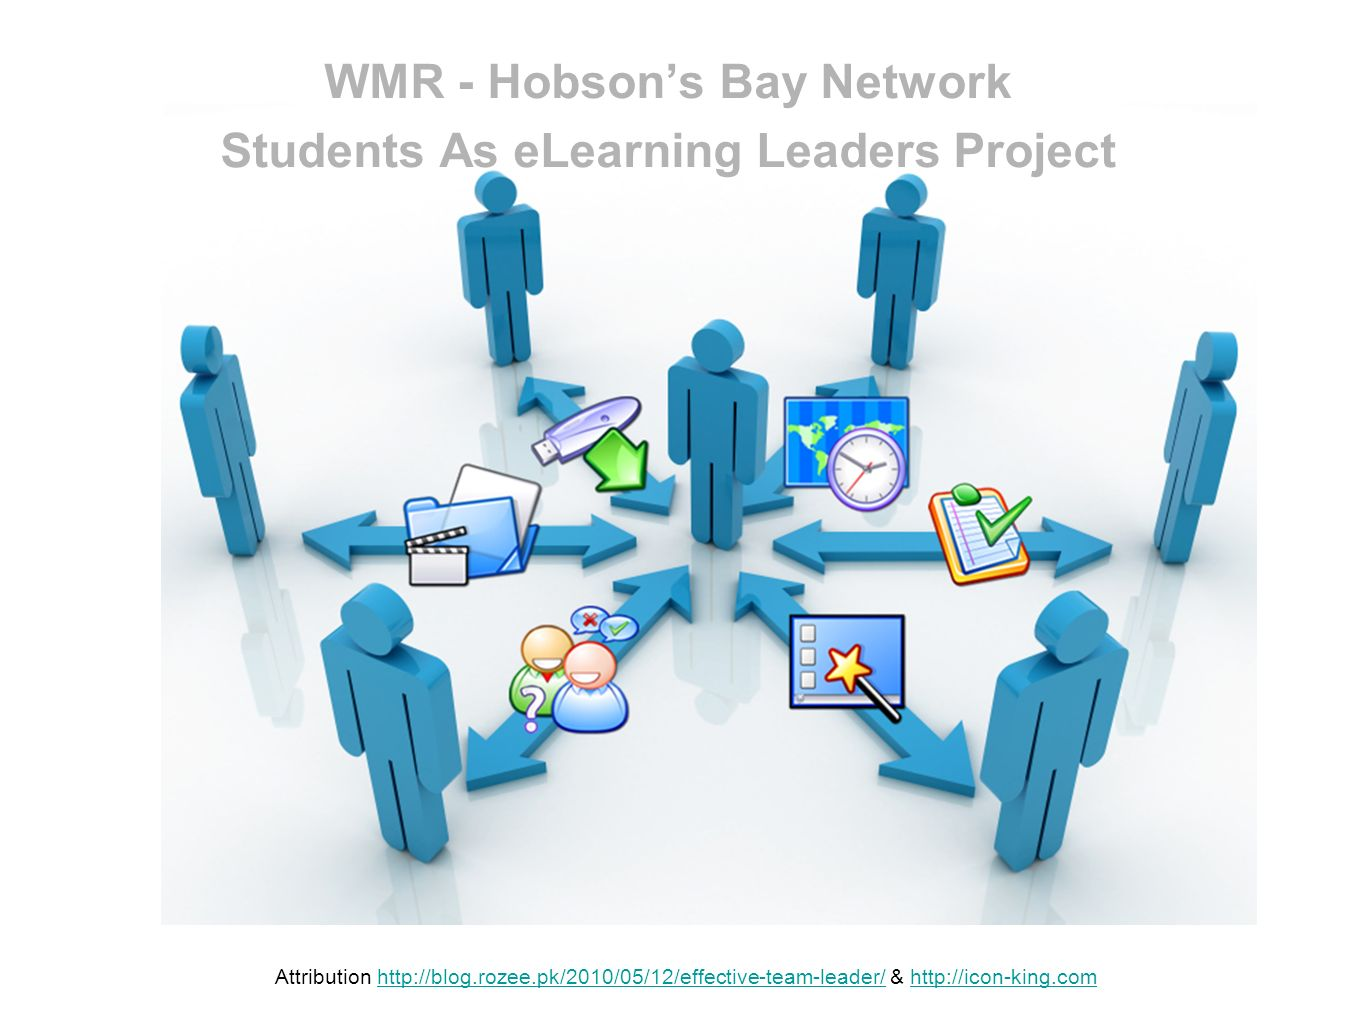 WMR - Hobsons Bay Network Students As eLearning Leaders Project Attribution http://blog.rozee.pk/2010/05/12/effective-team-leader/ & http://icon-king.